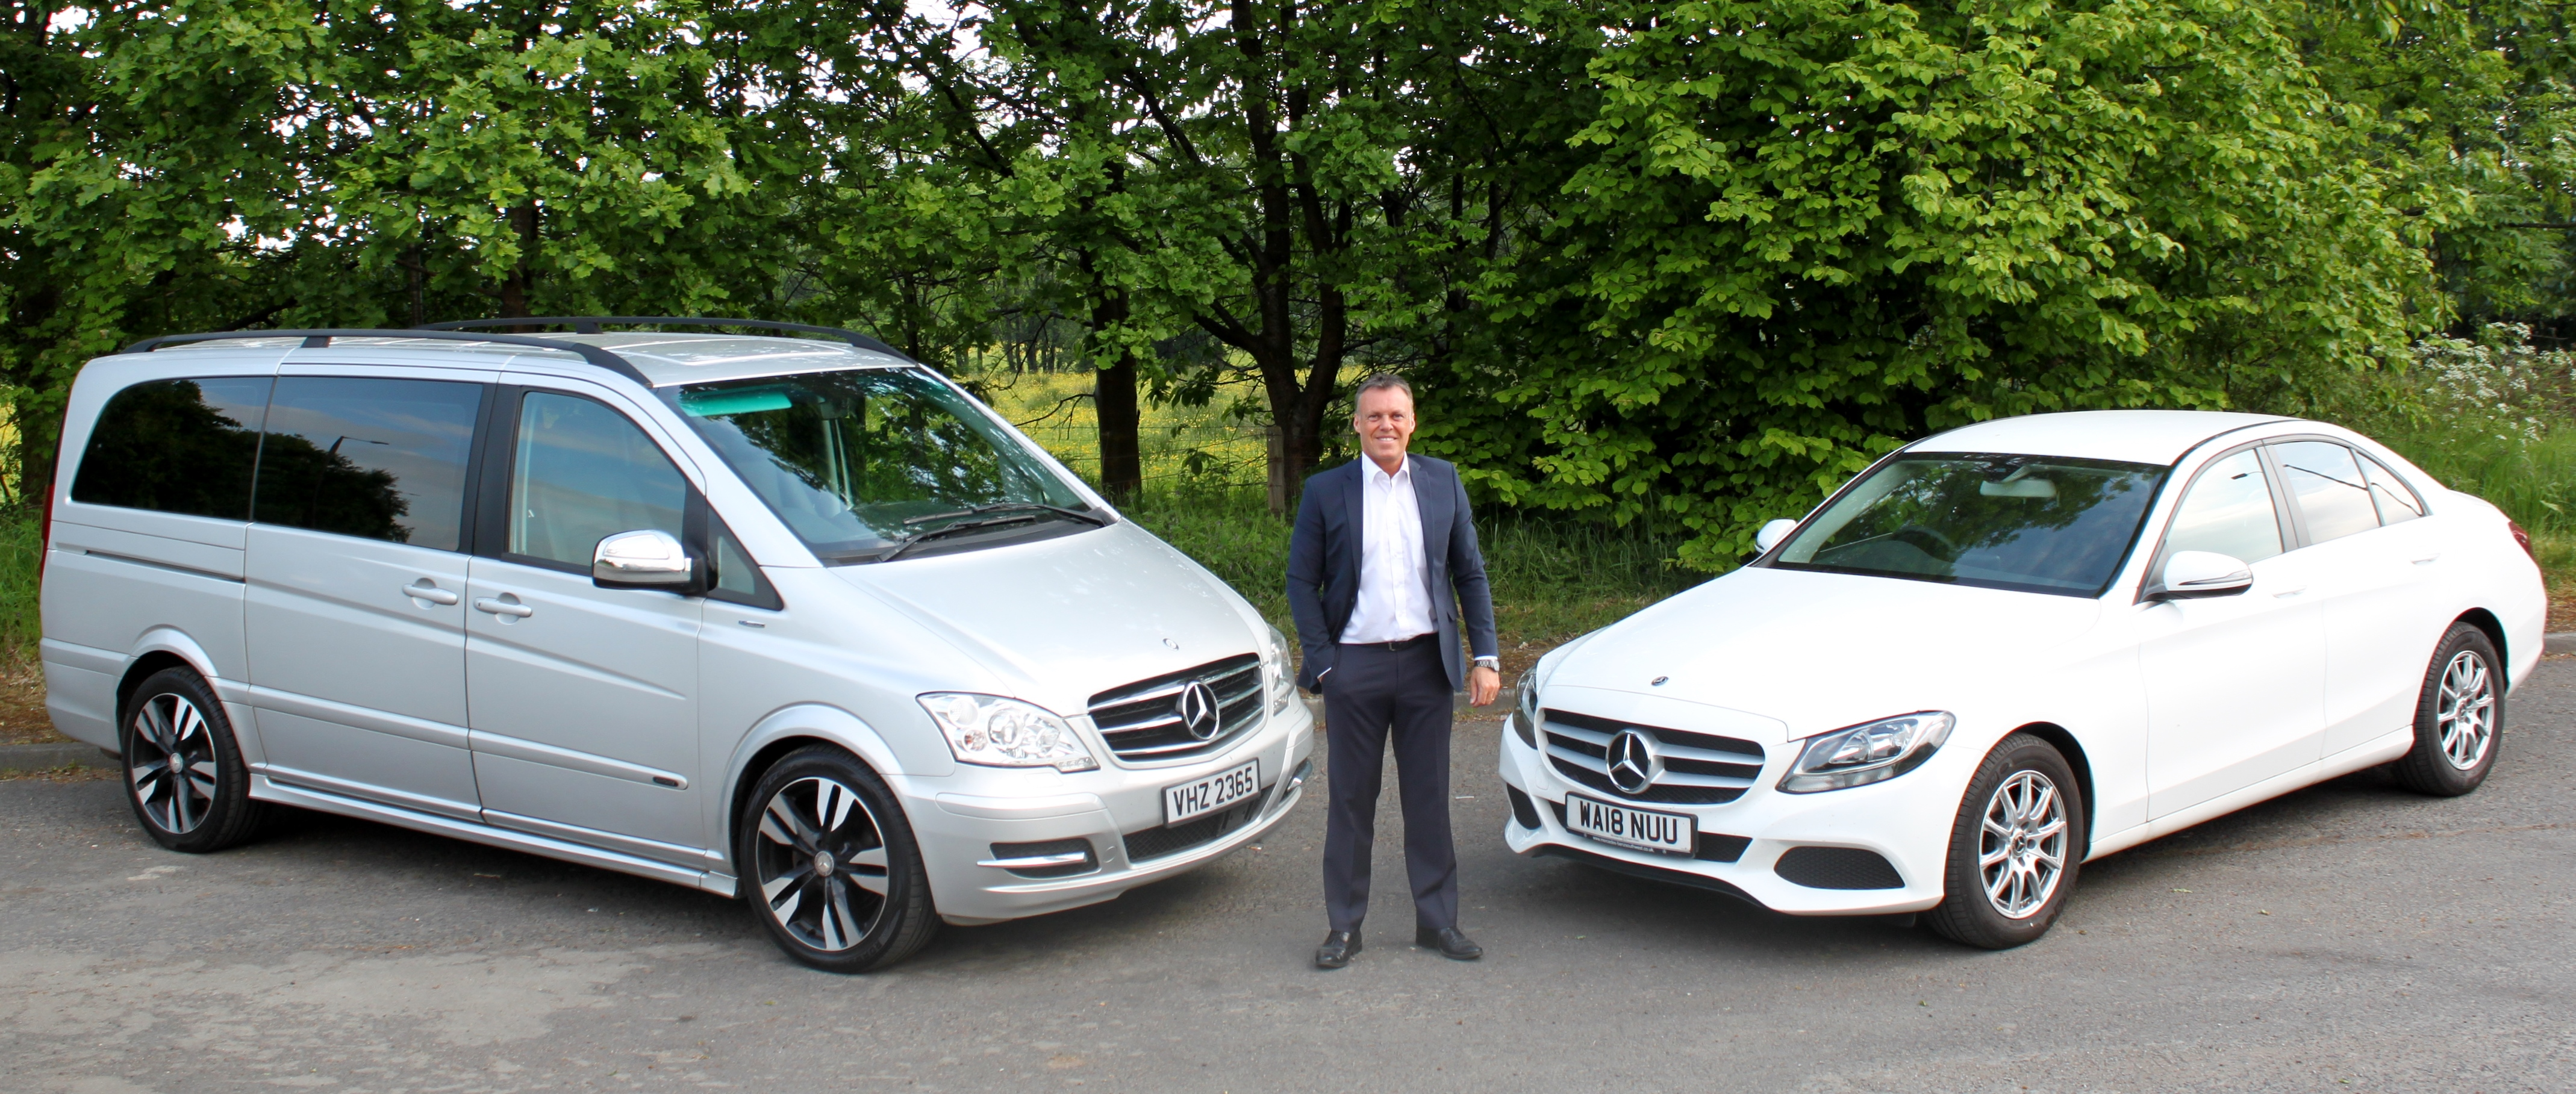 Mercedes V-Class and C-Class